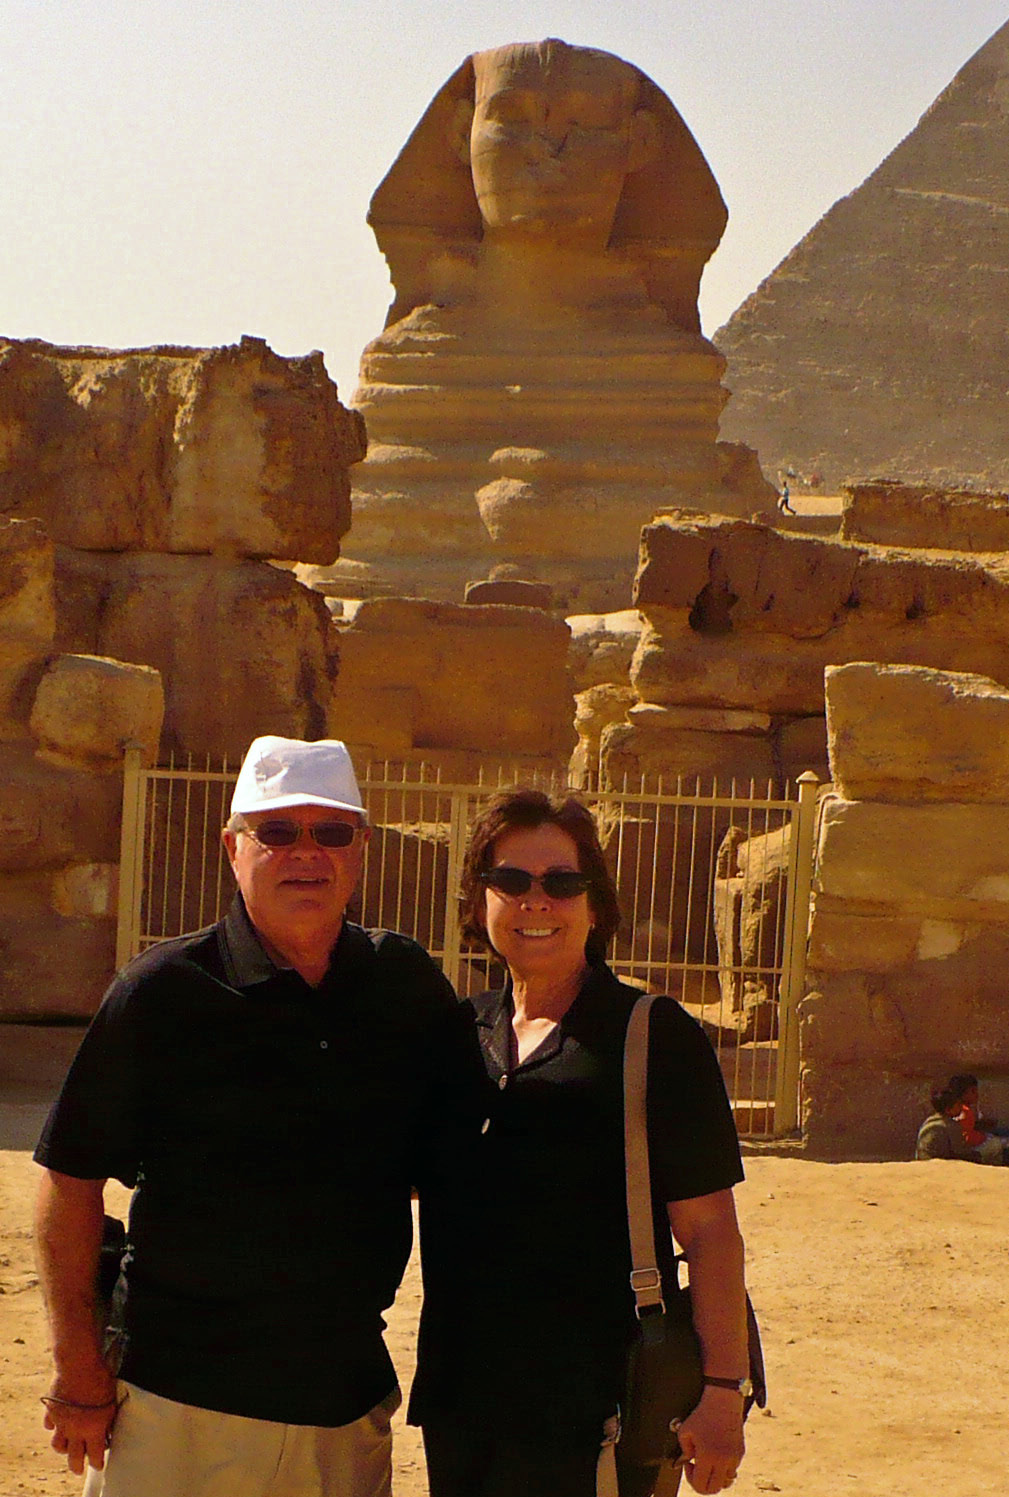 The Sphinx and Great Pyramid